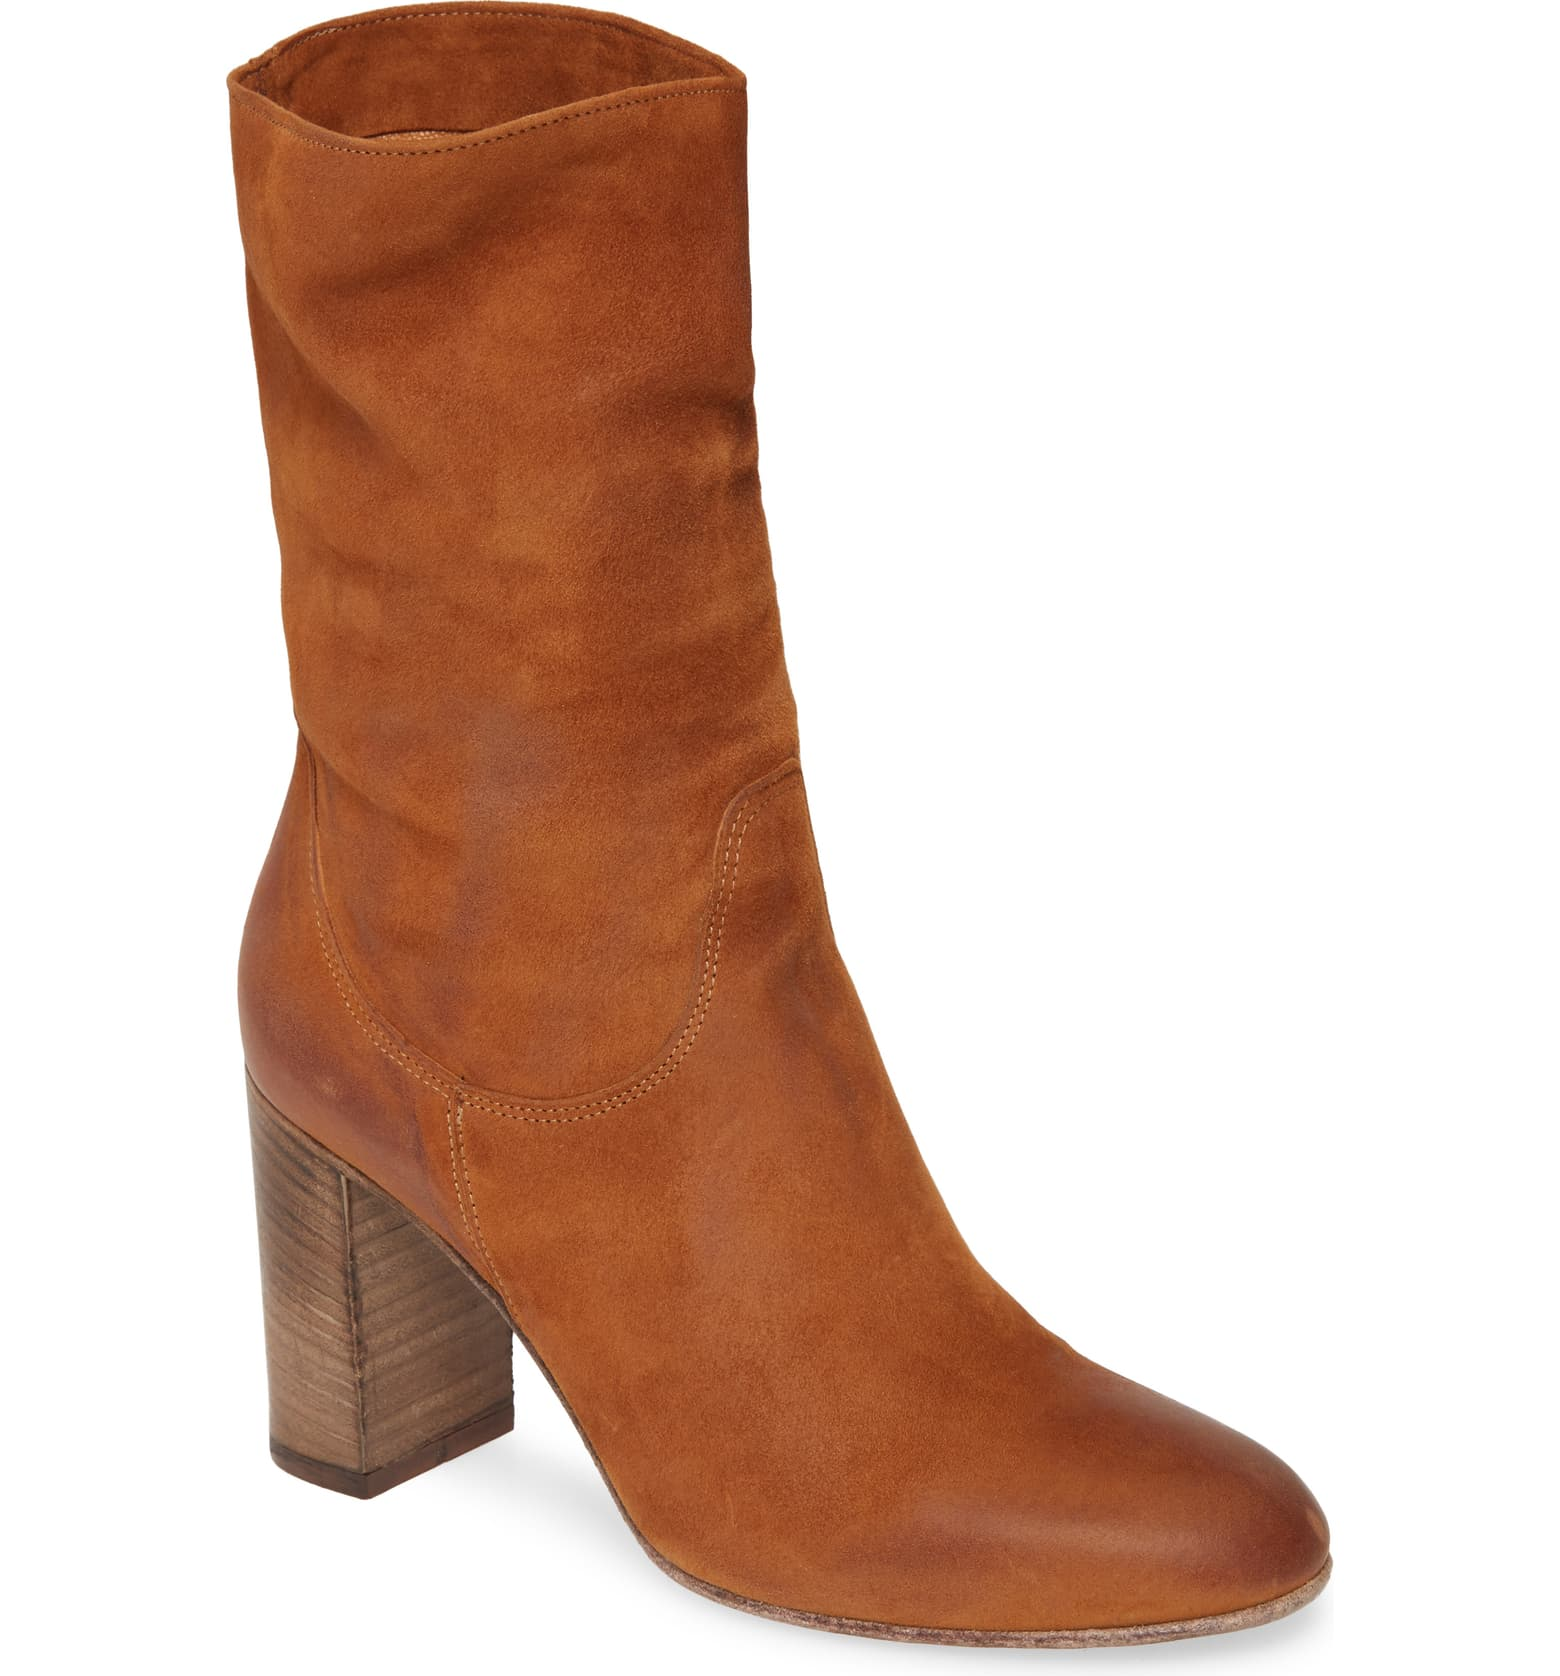 suede slouchy free people boot thats perfect for Fall 2019!